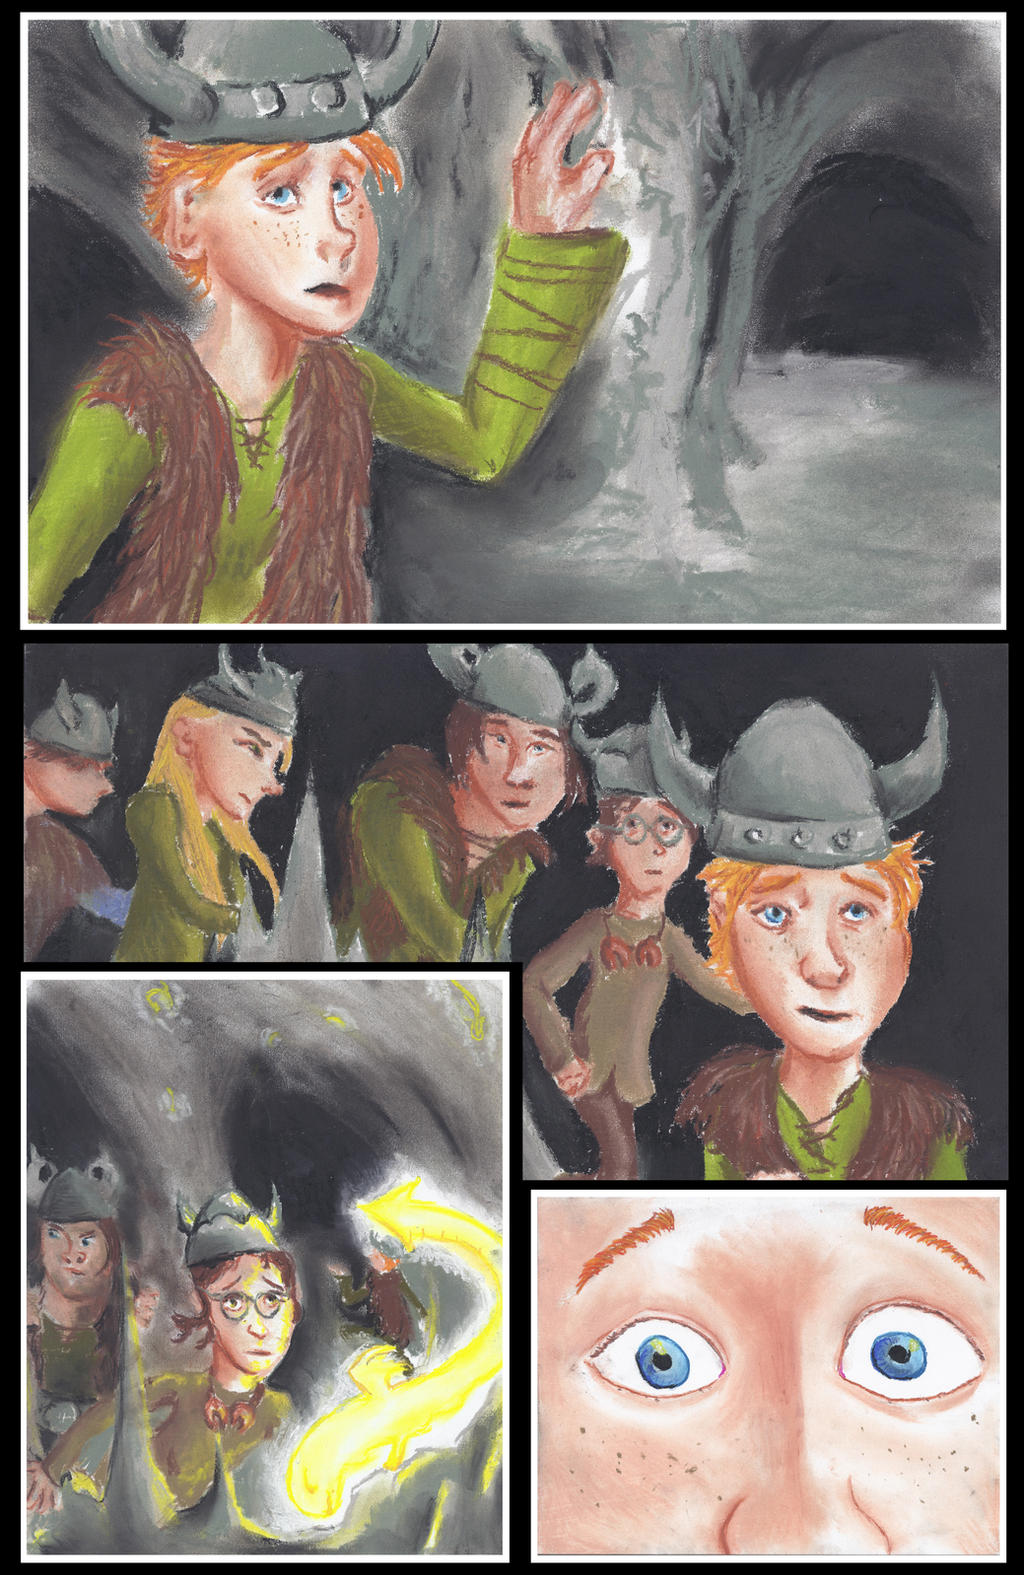 Httyd graphic novel book 1 prologue page 1 by zarakoda on deviantart httyd graphic novel book 1 prologue page 1 by zarakoda ccuart Image collections